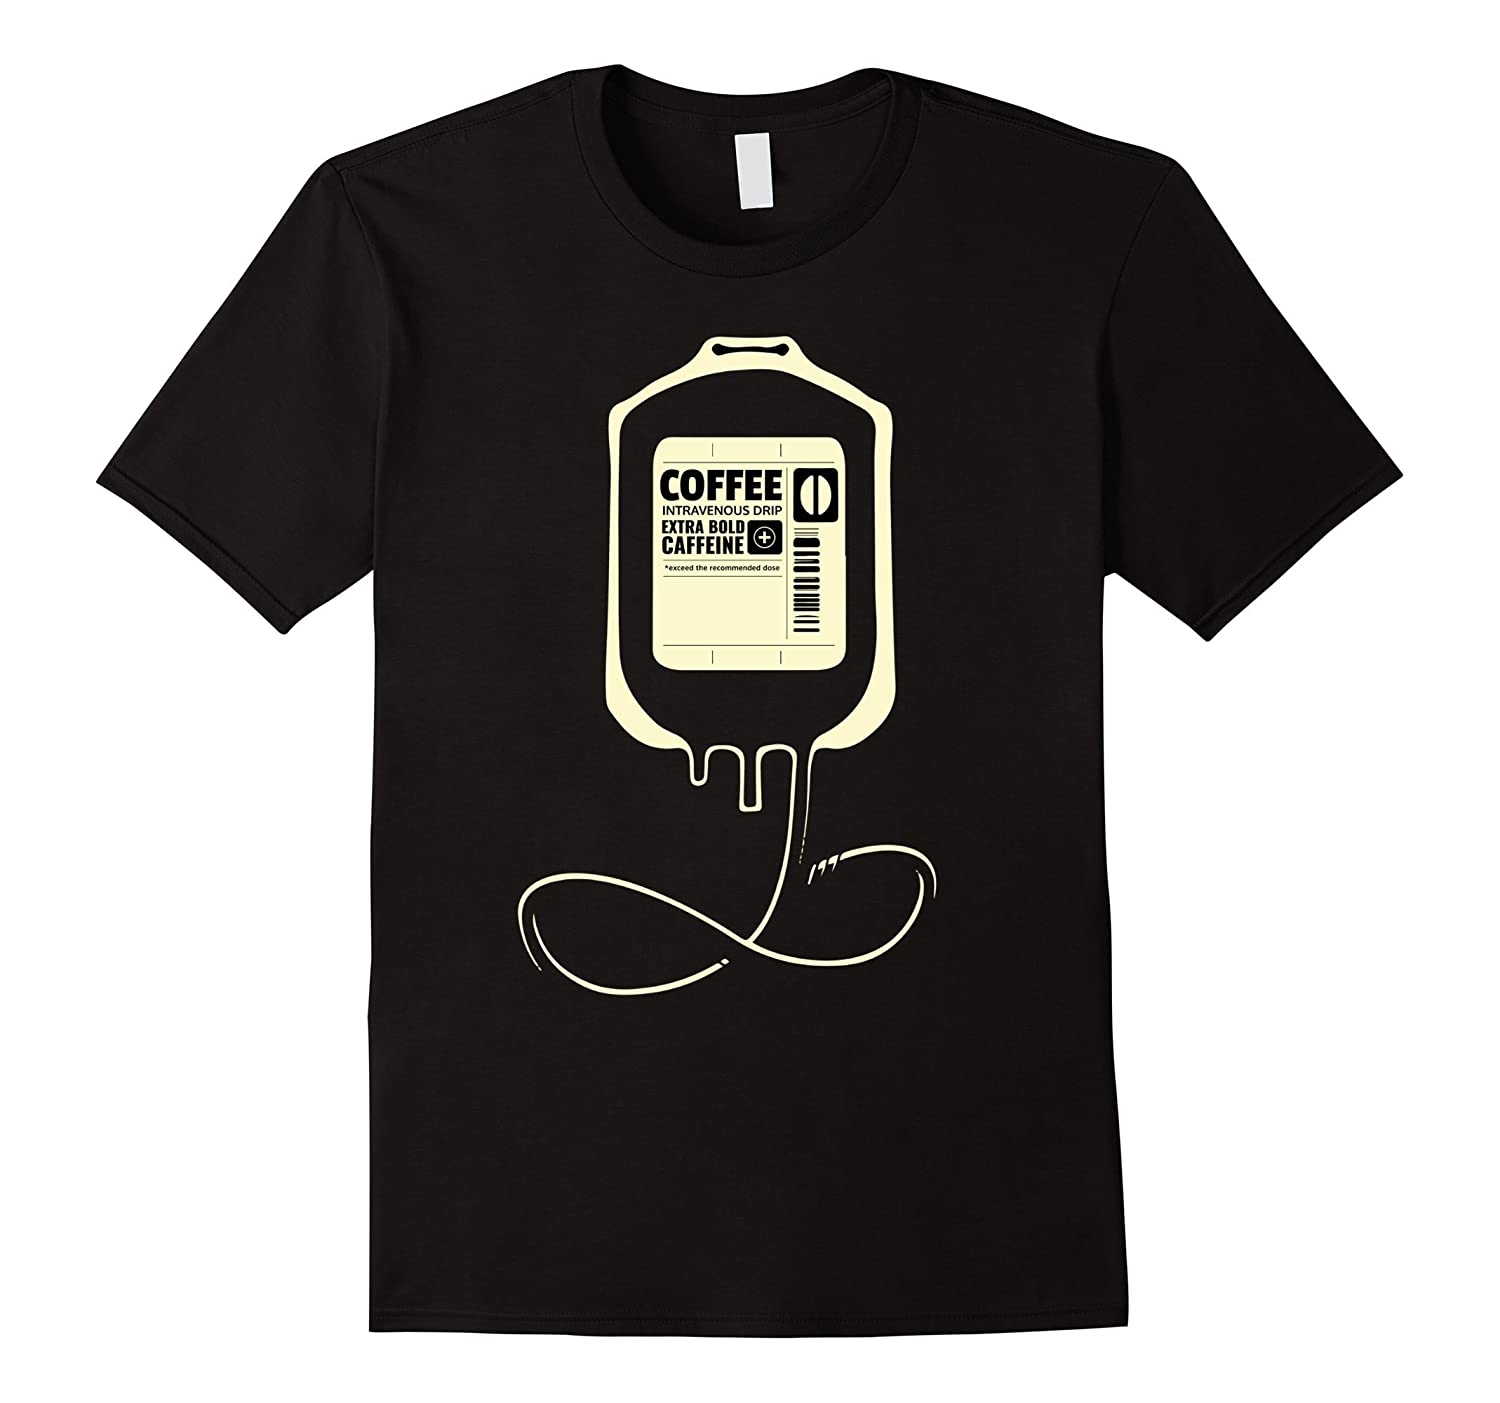 Coffee Caffeine Intravenous Drip Extra Bold PLUS-Art